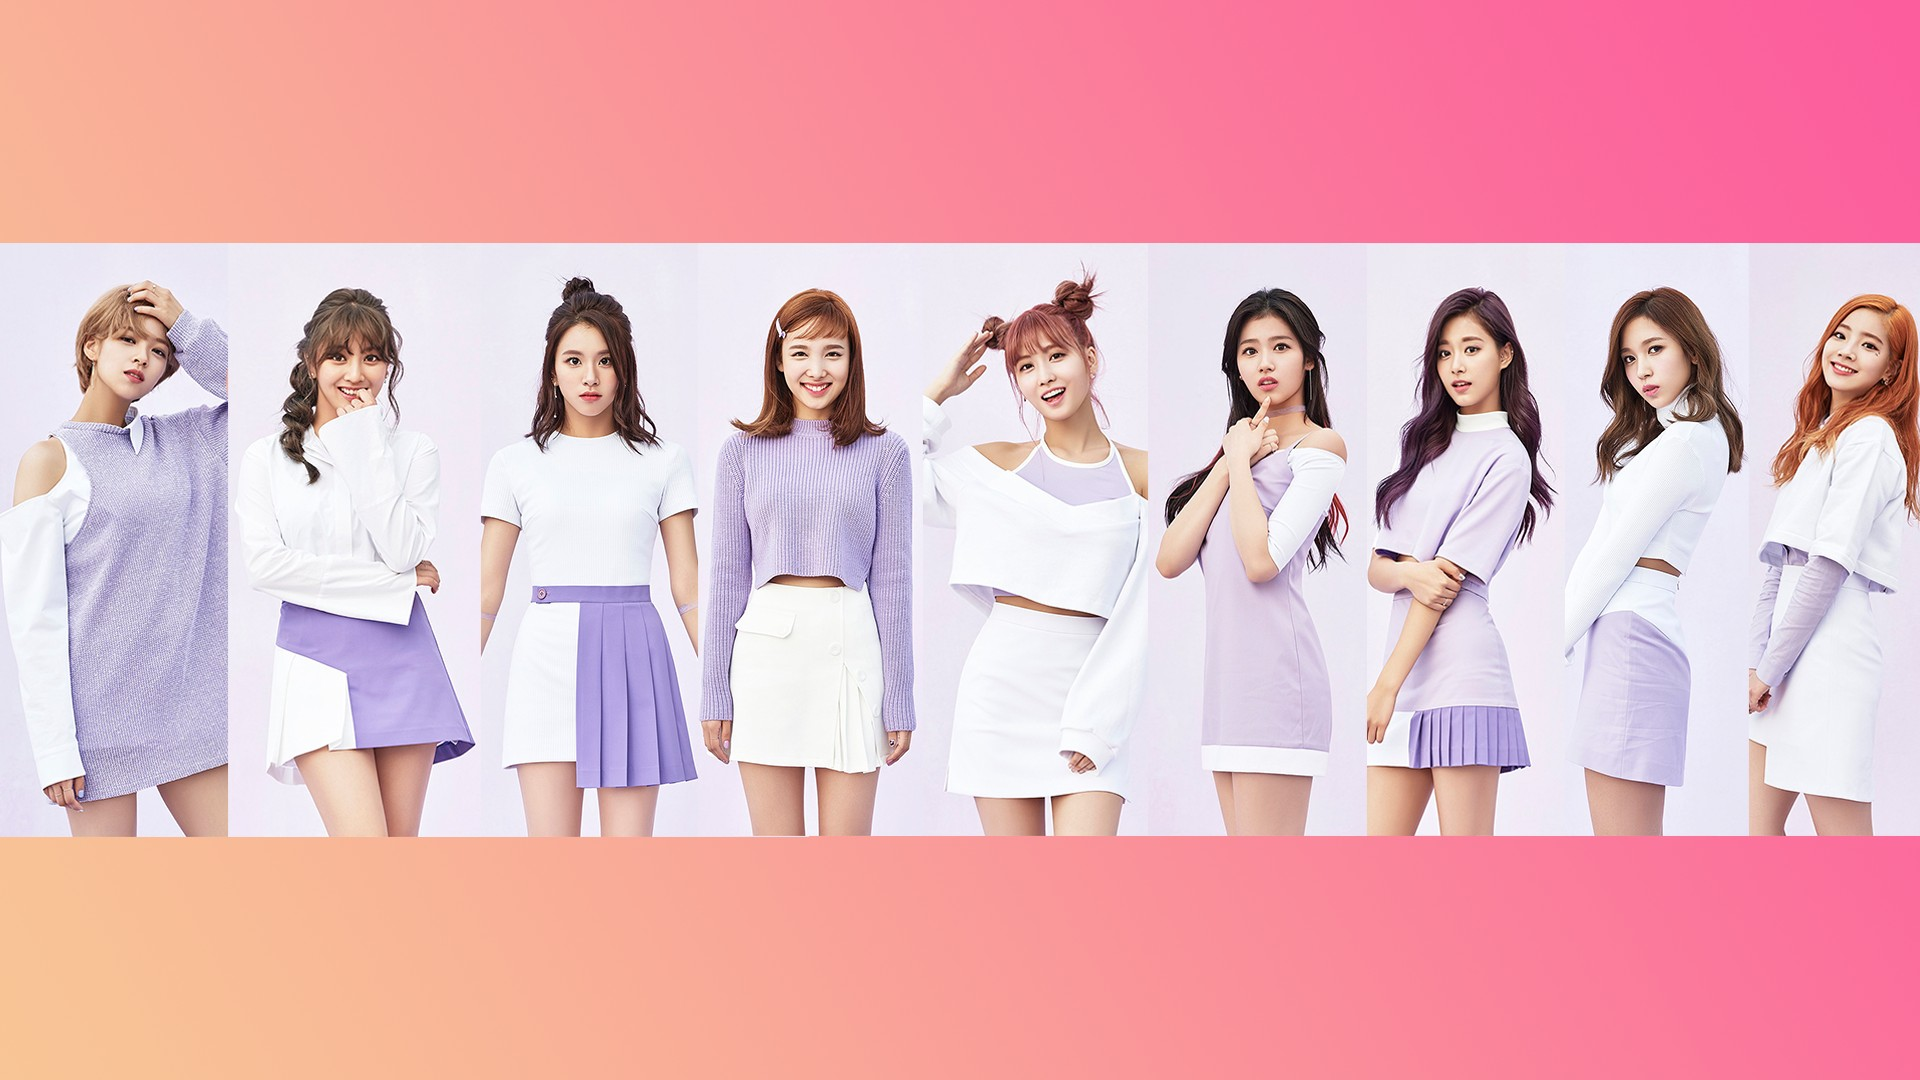 Twice wallpaper download free cool high resolution wallpapers 1920x1080 twice 1080p wallpapers album on imgur stopboris Image collections